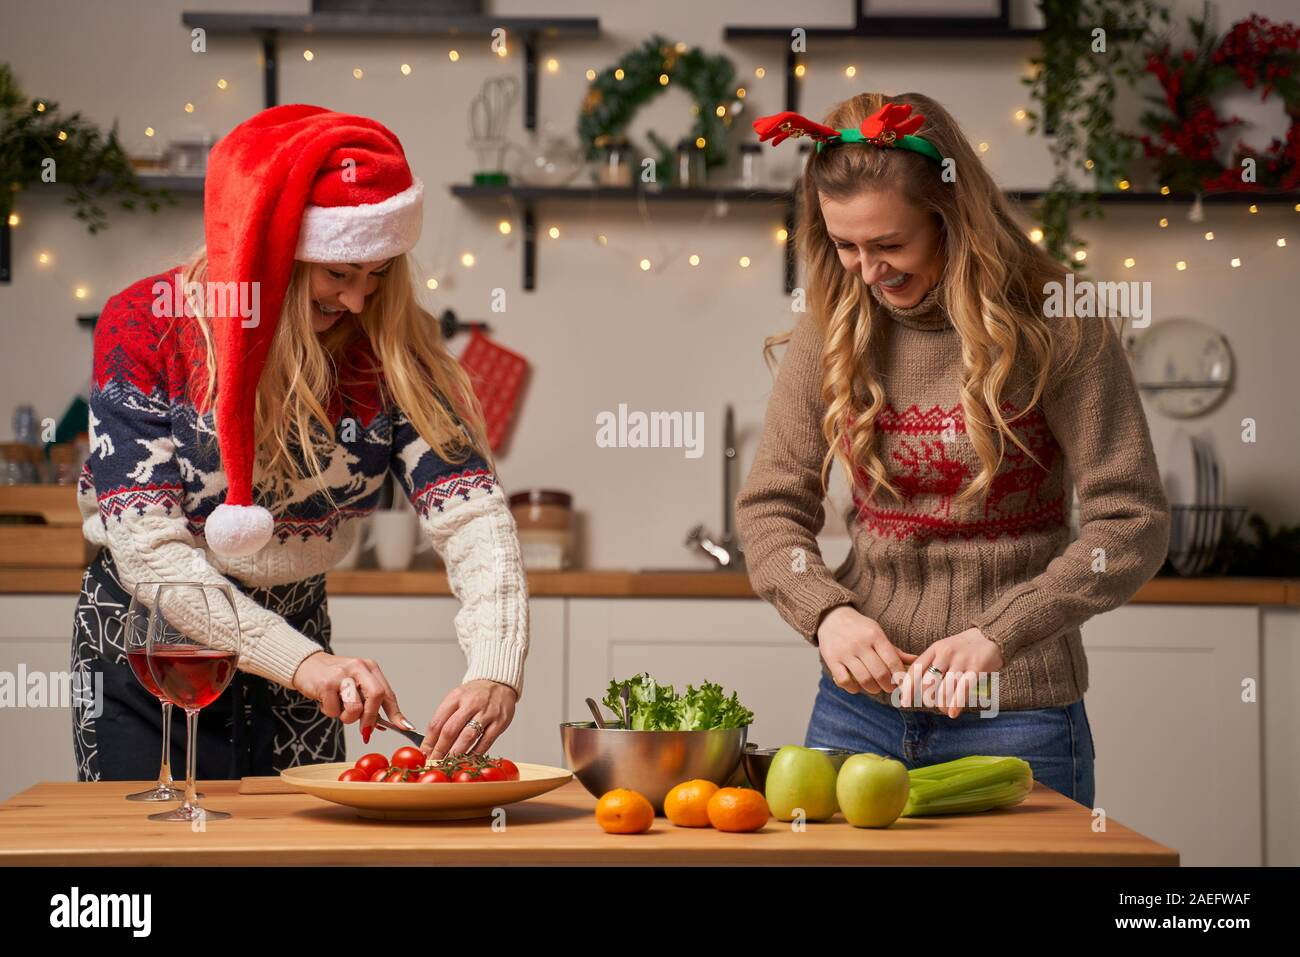 Two Blonde Women Prepare Food For New Year In Kitchen Decorated With Christmas Wreaths And Garlands Stock Photo Alamy